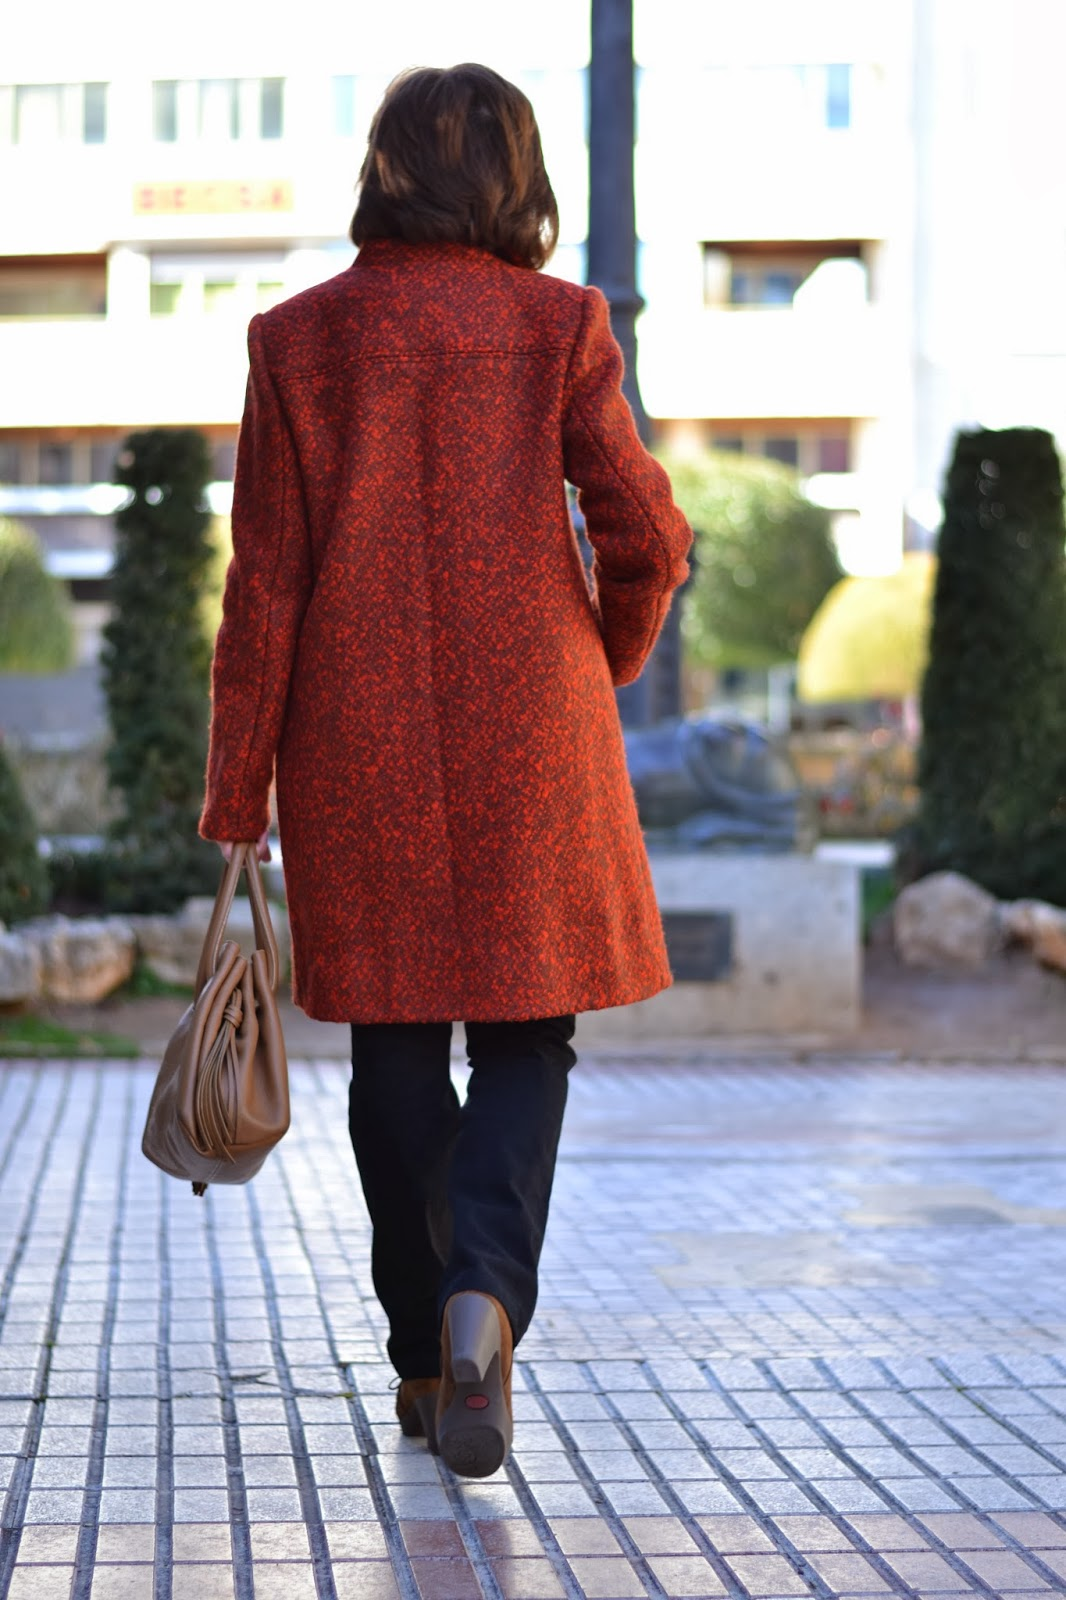 Coat, orange, brown, rust, Burdastyle, burdastyle 103 08/13, collar, pocket